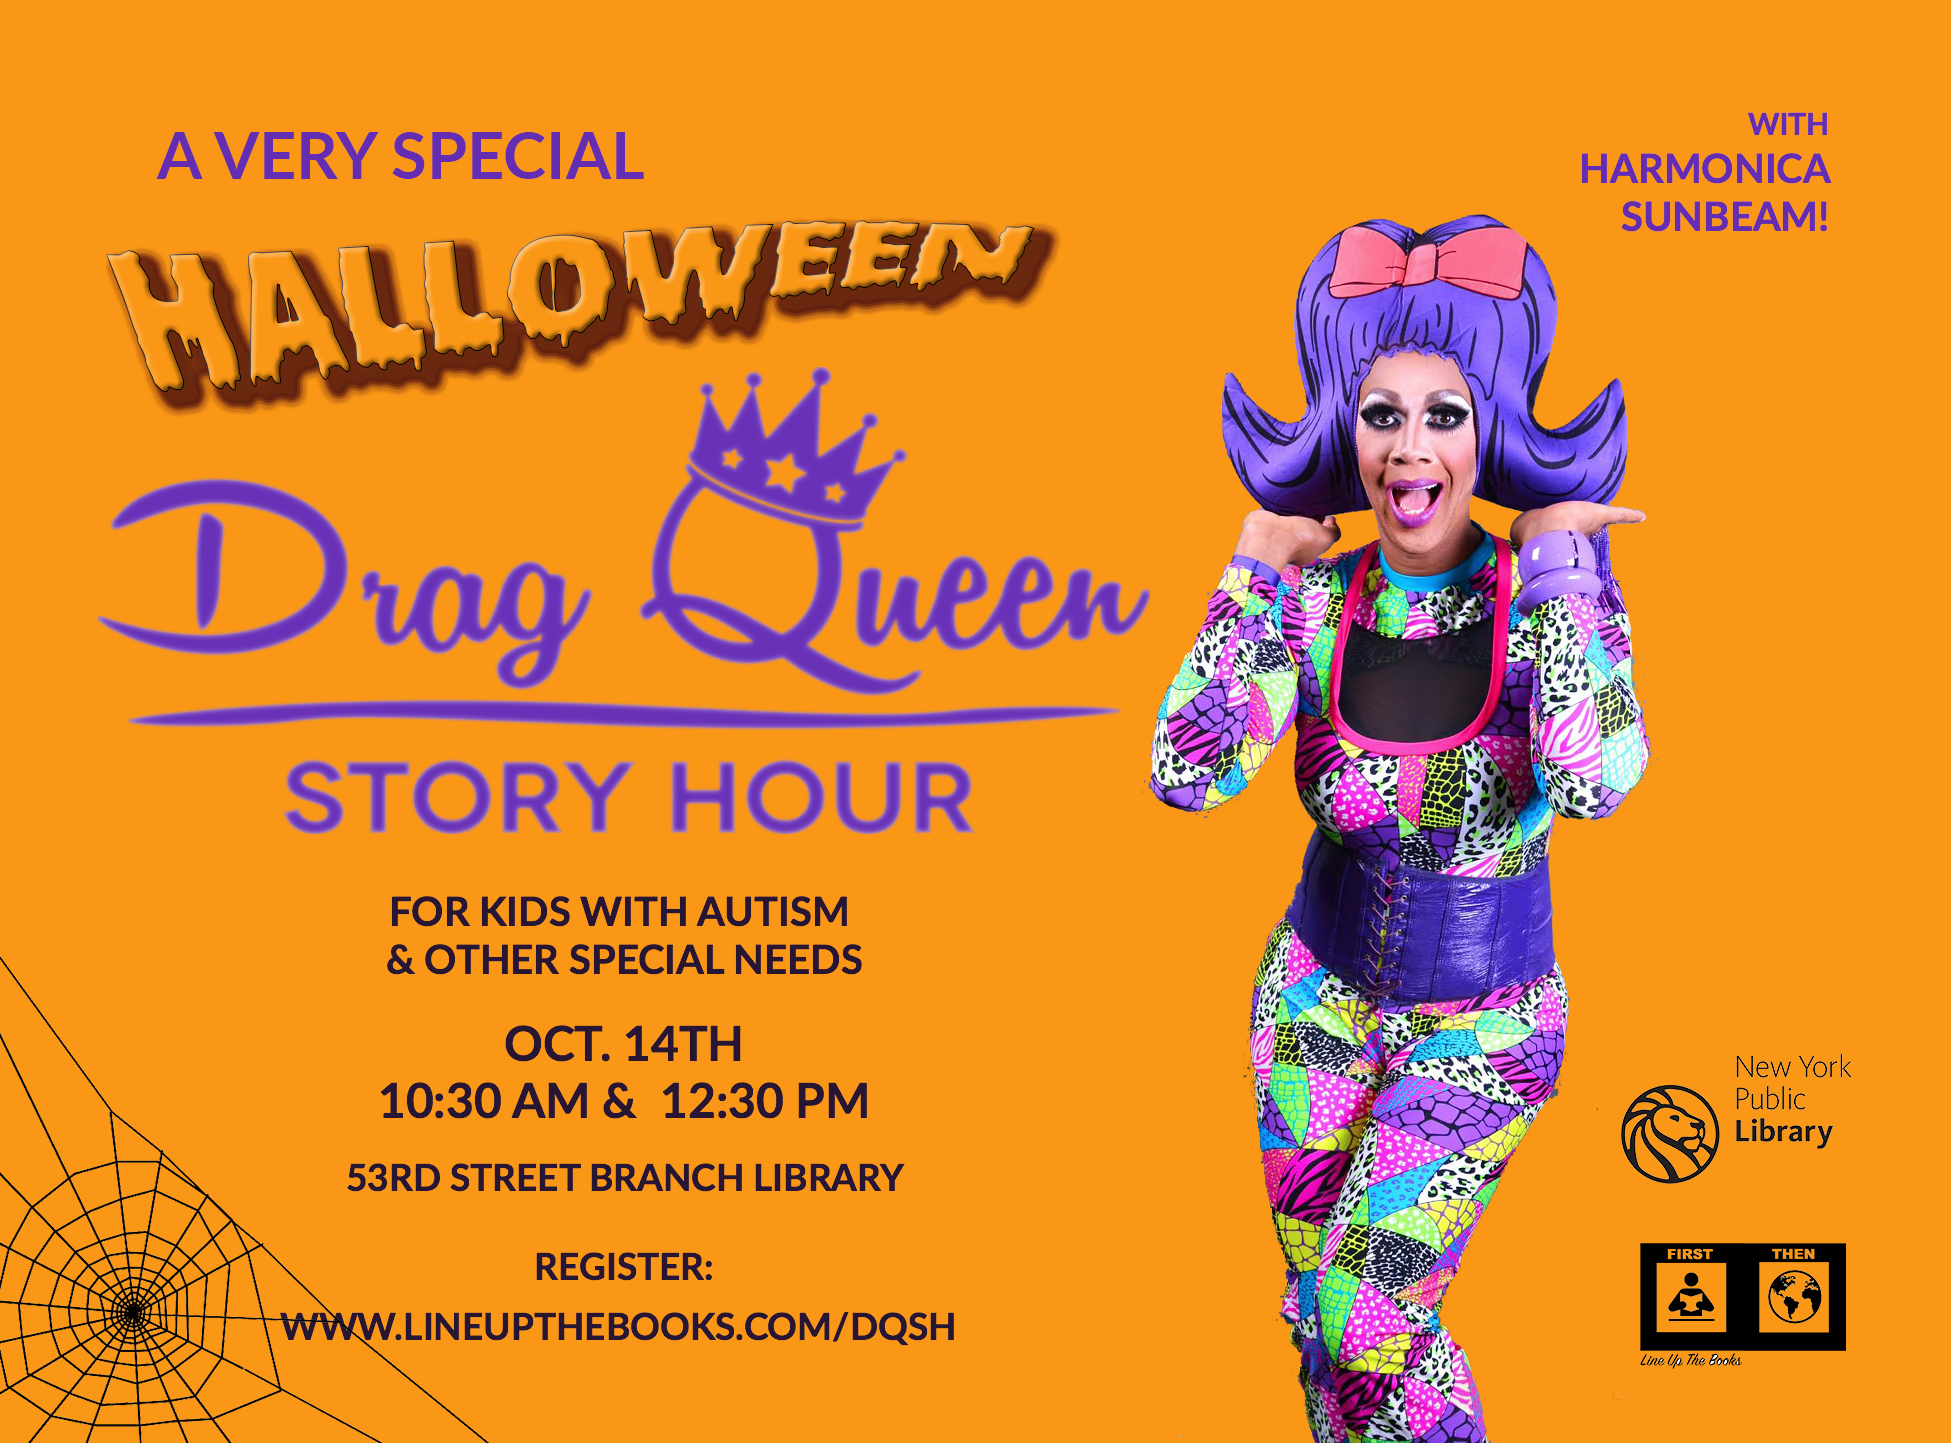 Presenting... Drag Queen Story Hour for Kids with Autism!